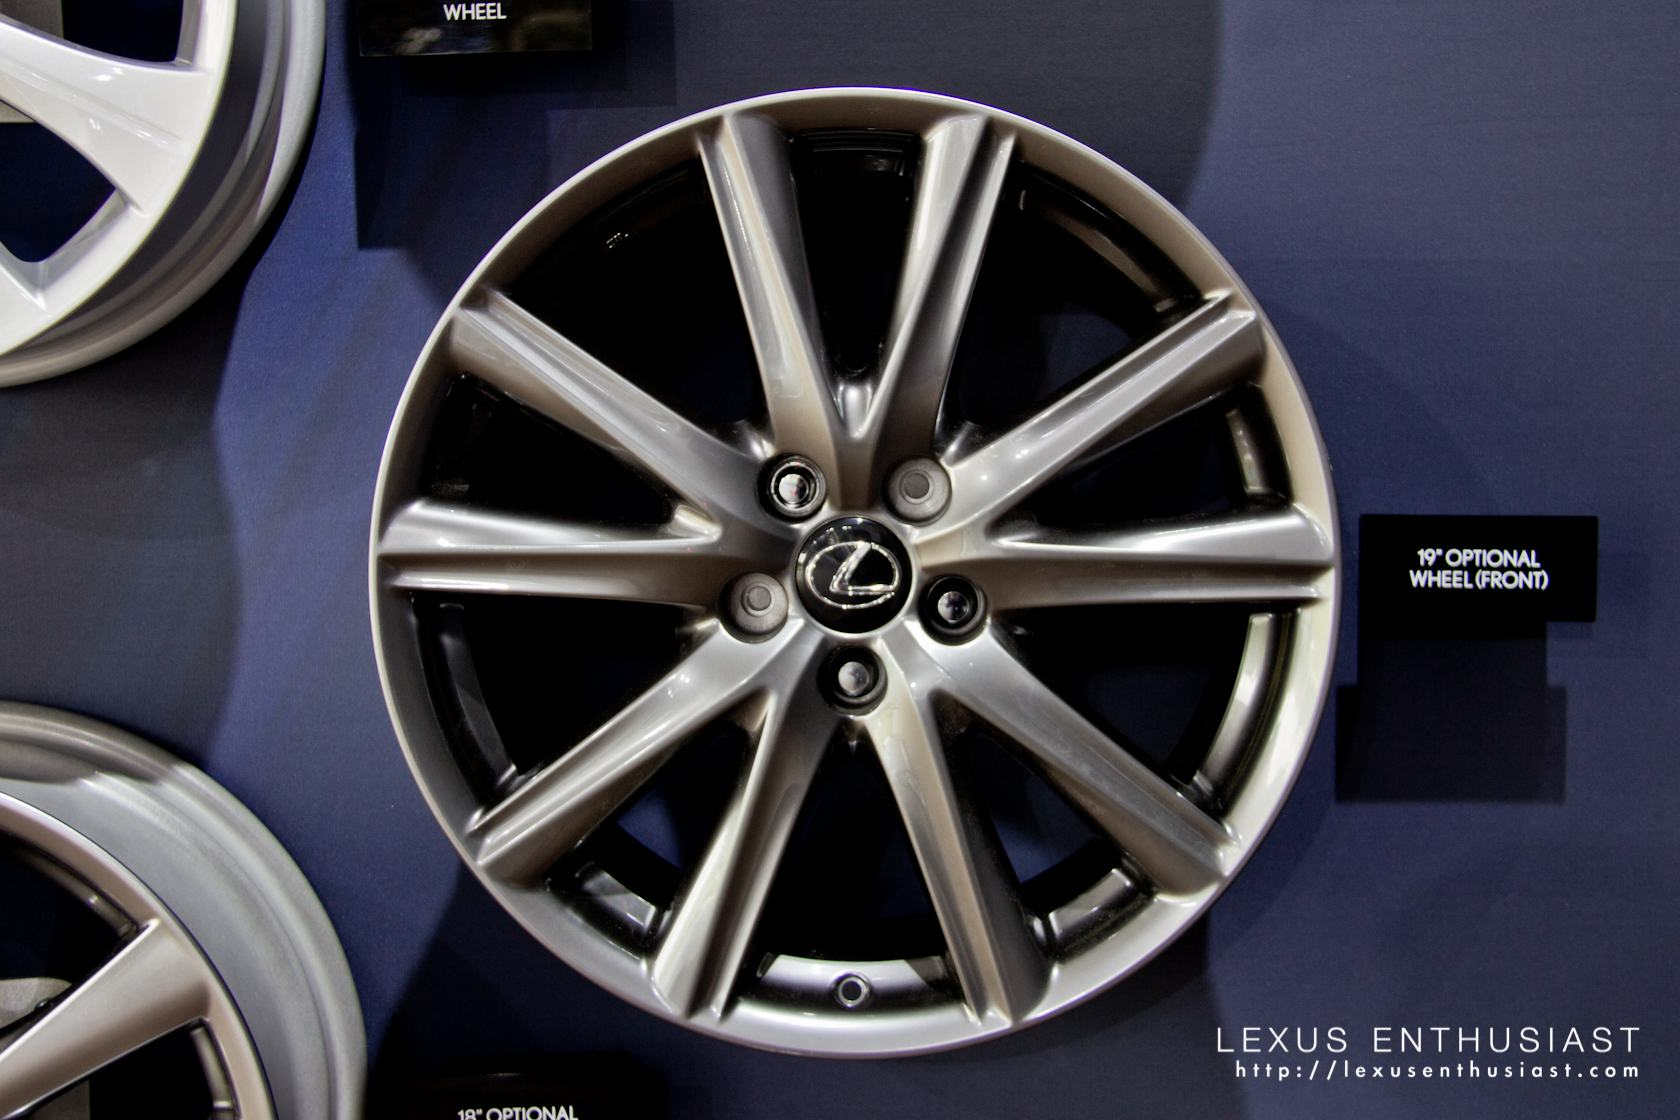 2013 Lexus GS 19 Inch Optional Wheel